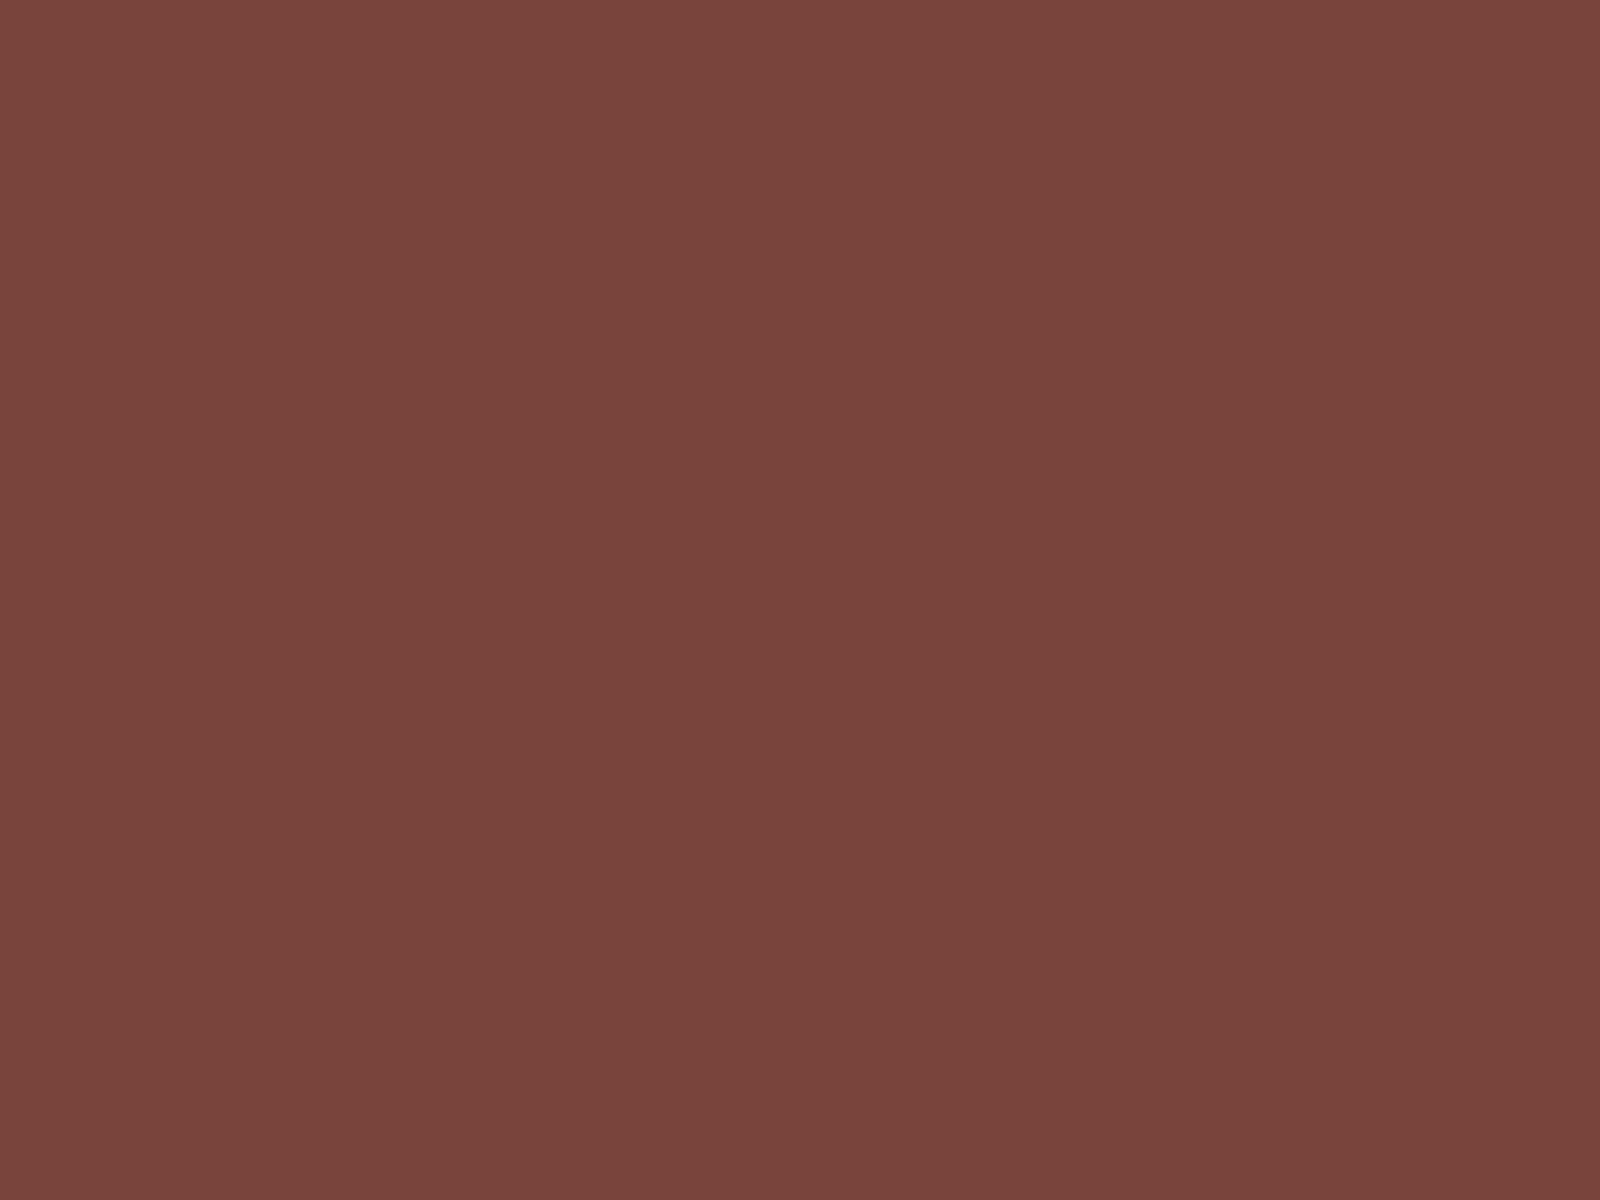 1600x1200 Medium Tuscan Red Solid Color Background